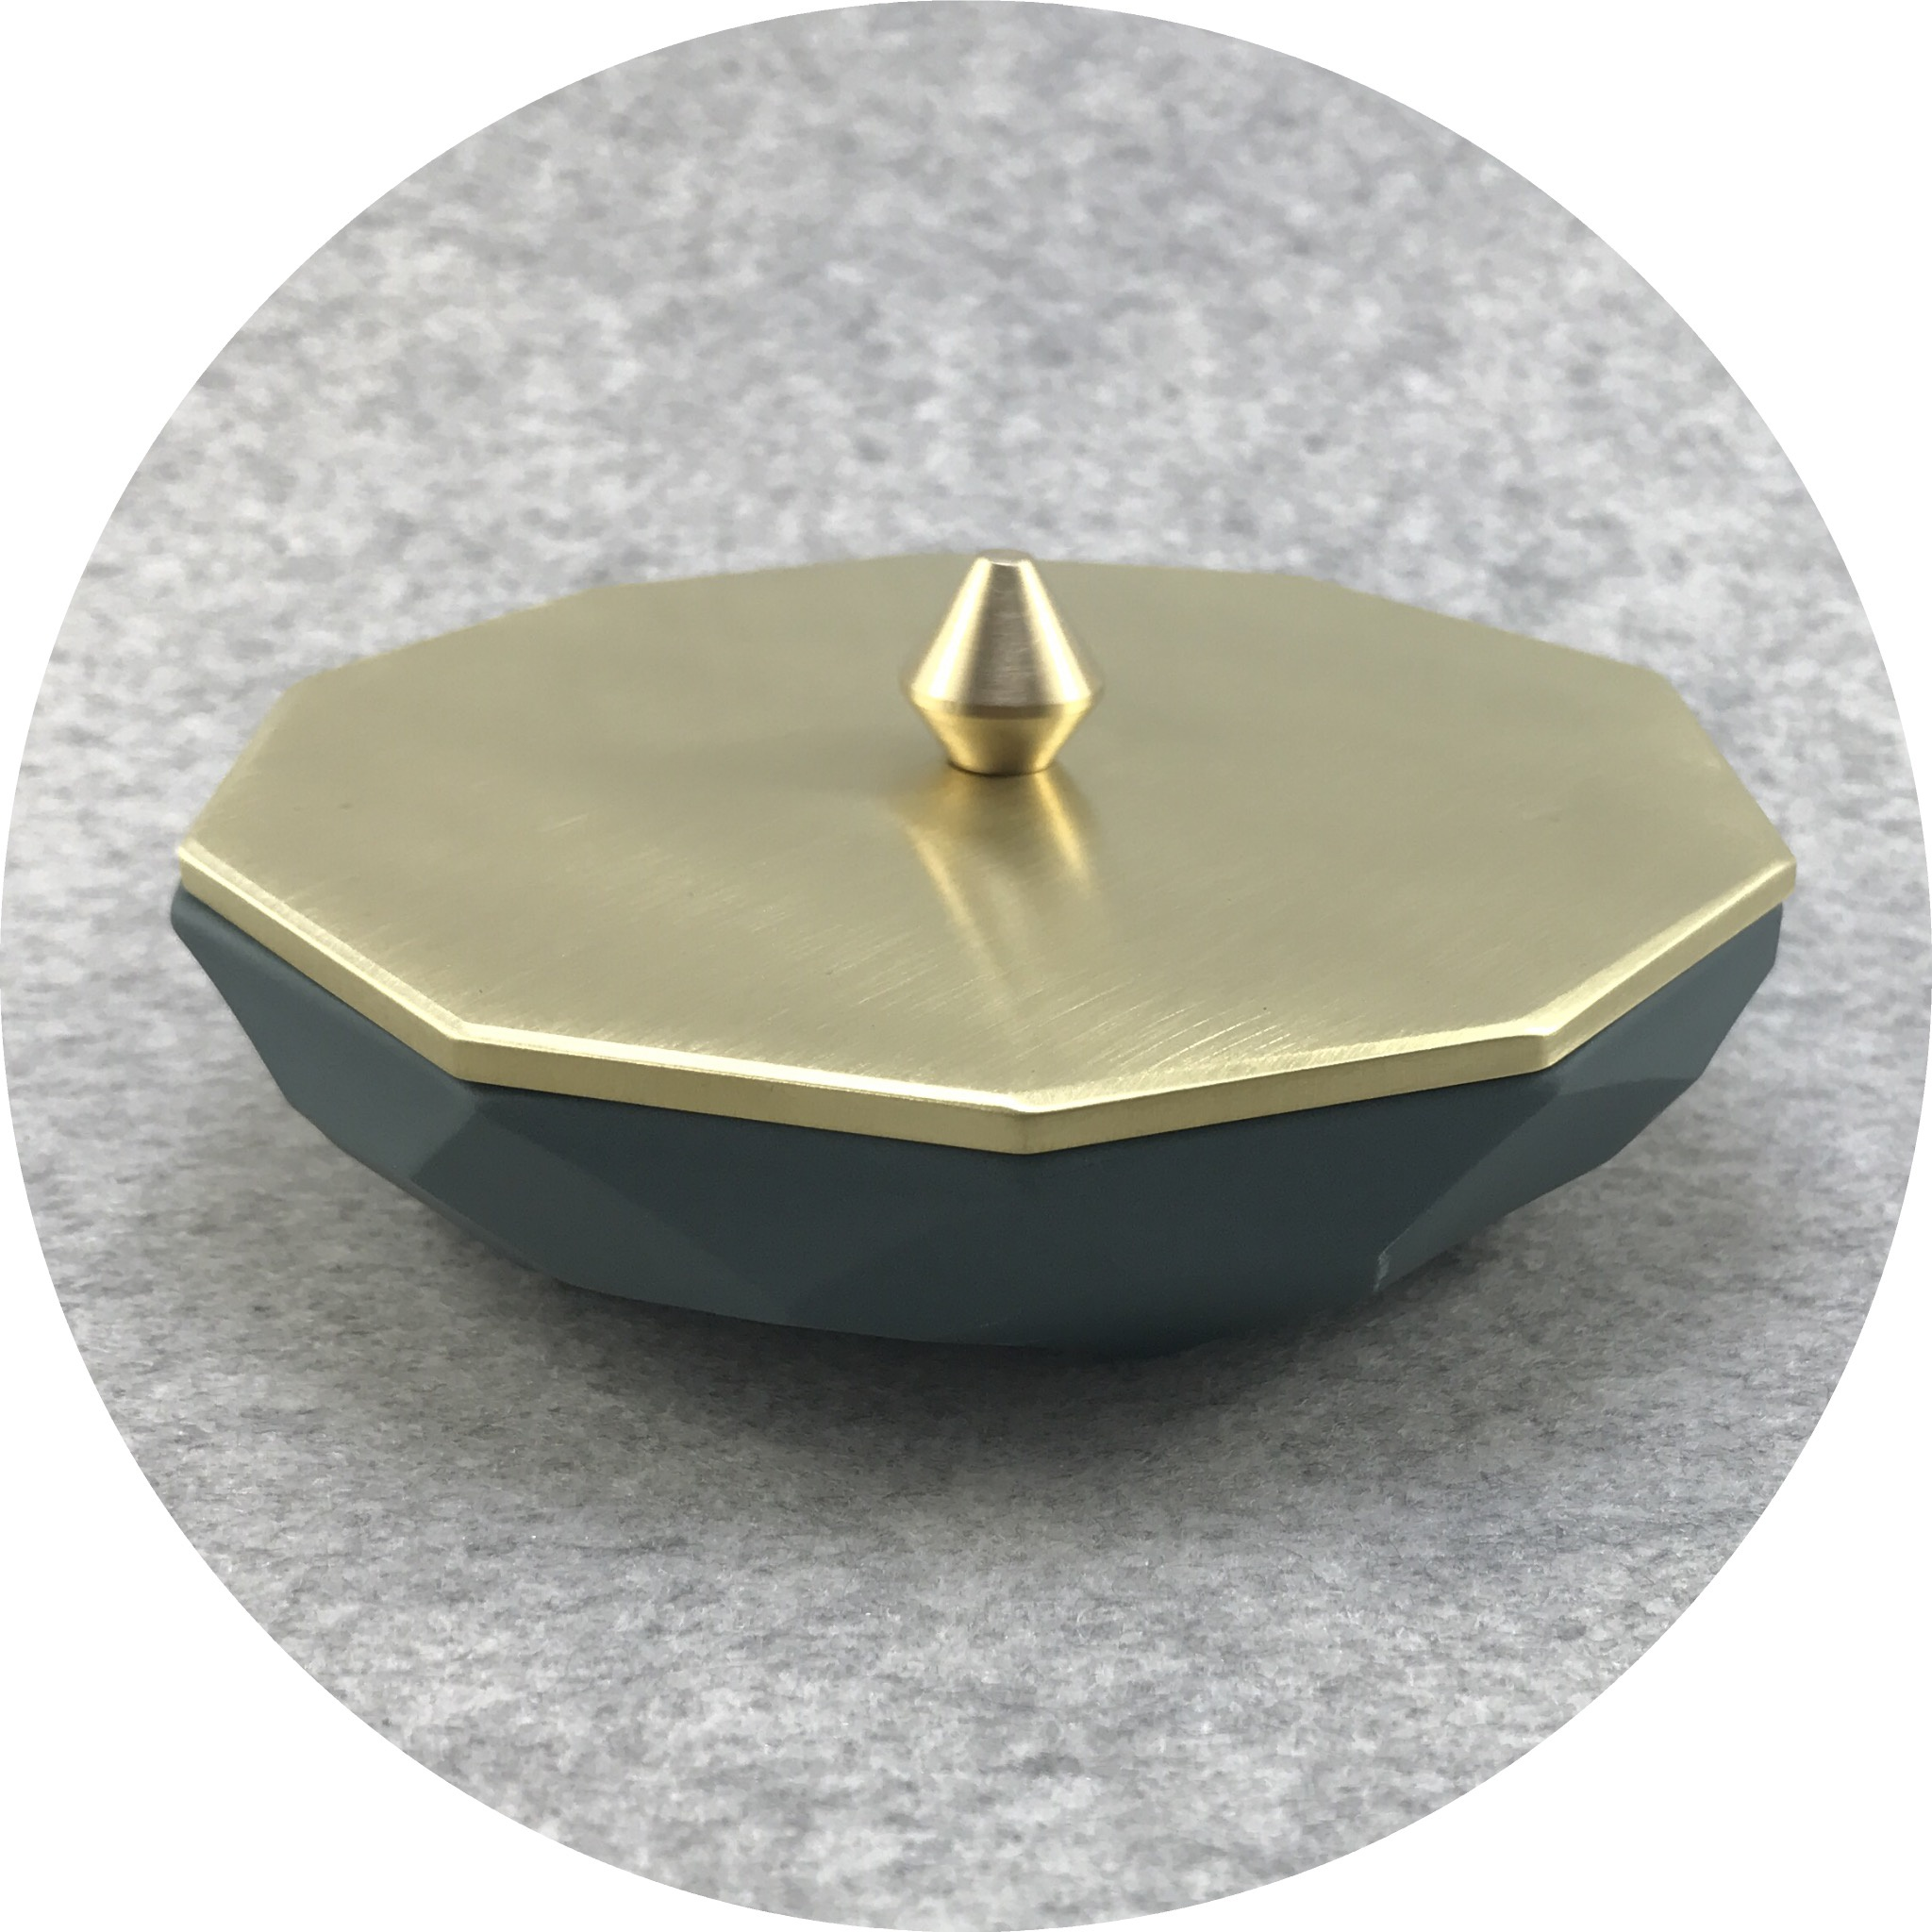 Abby Seymour- Jewellery Dish. Slate facetted porcelain and Brass.